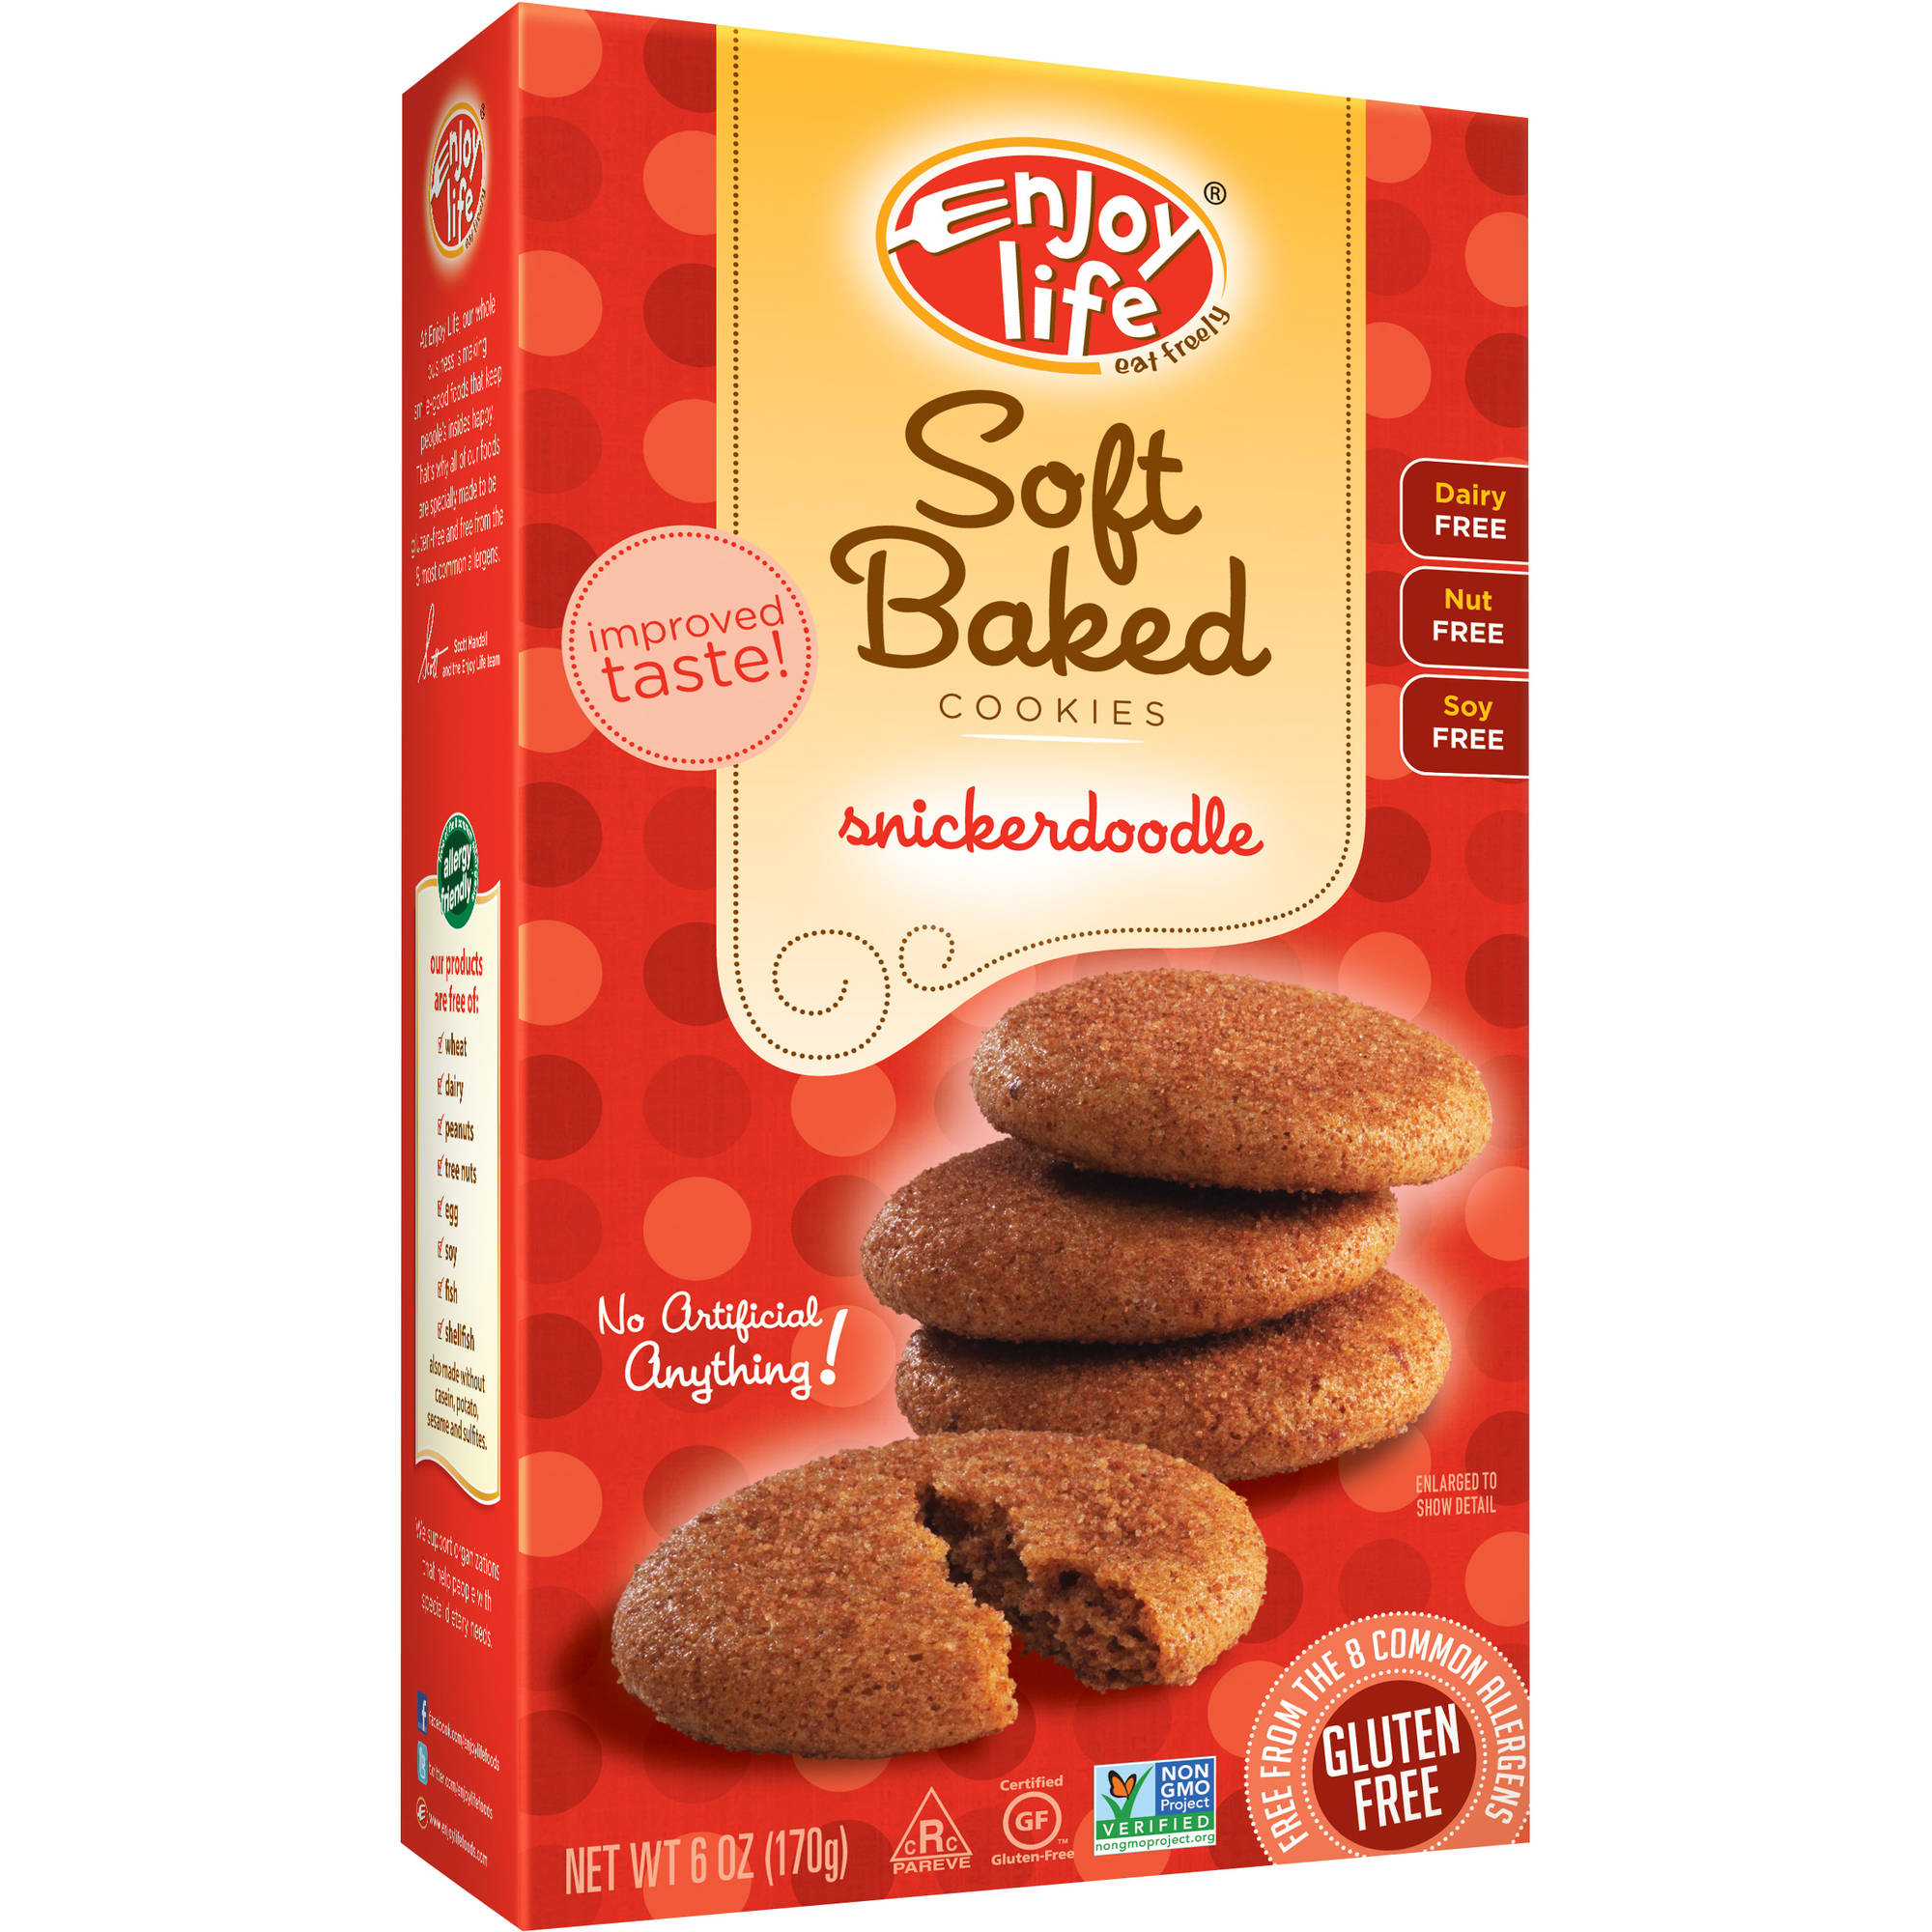 Enjoy Life Gluten-Free, Nut-Free, Vegan Snickerdoodle Soft Baked Cookies, 6 oz, (Pack of 6)